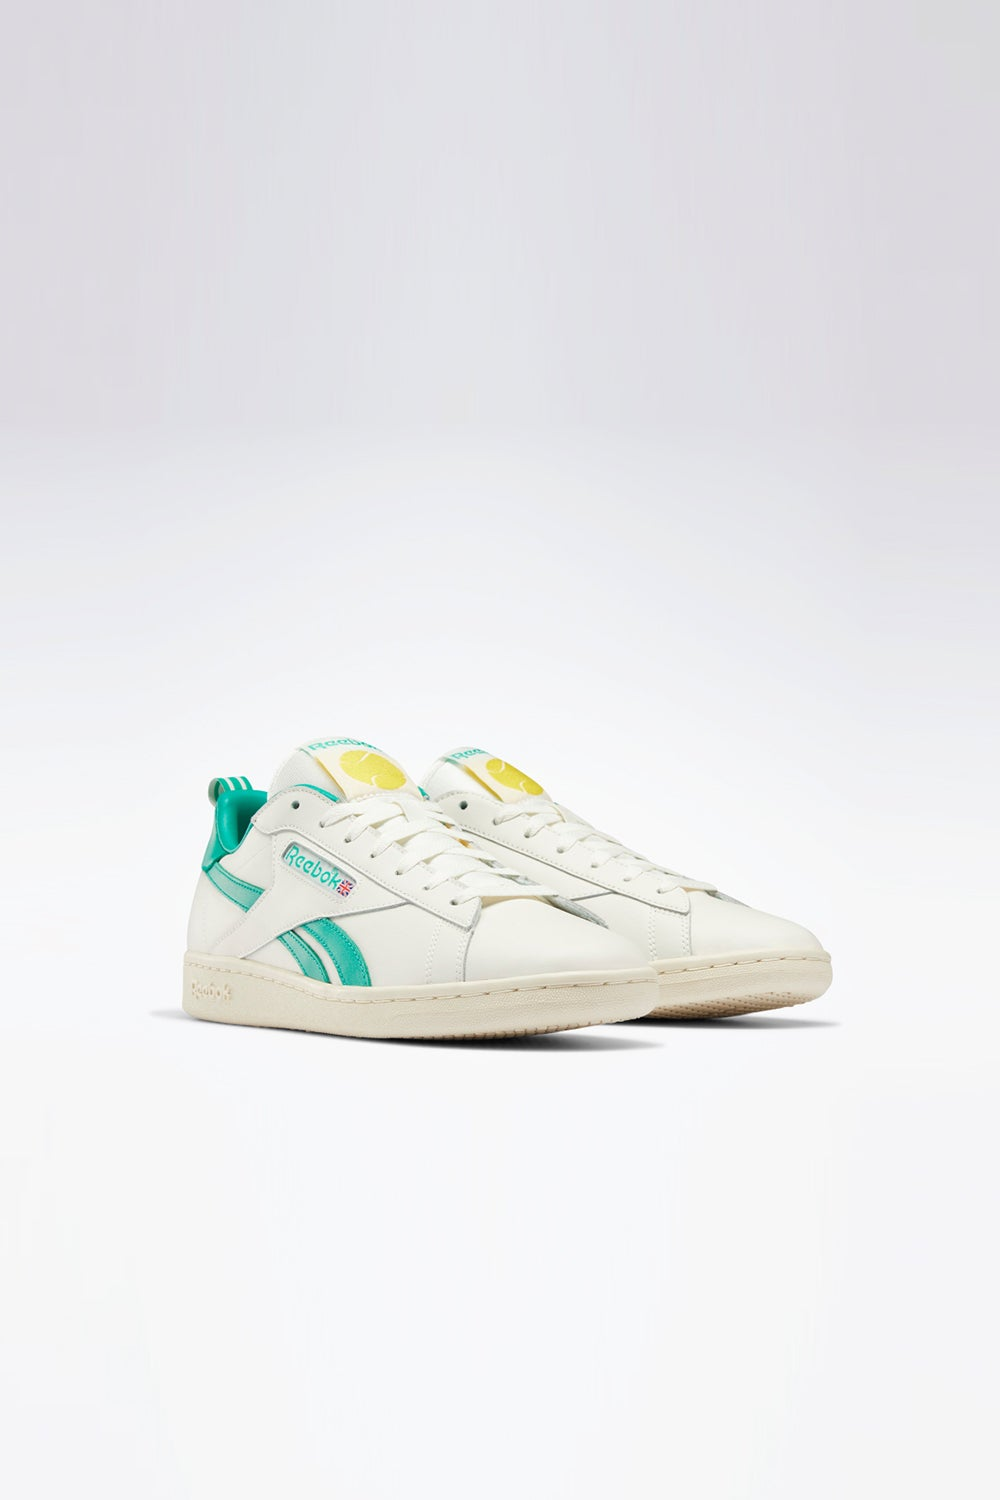 Reebok NPC UK Shoes Emerald